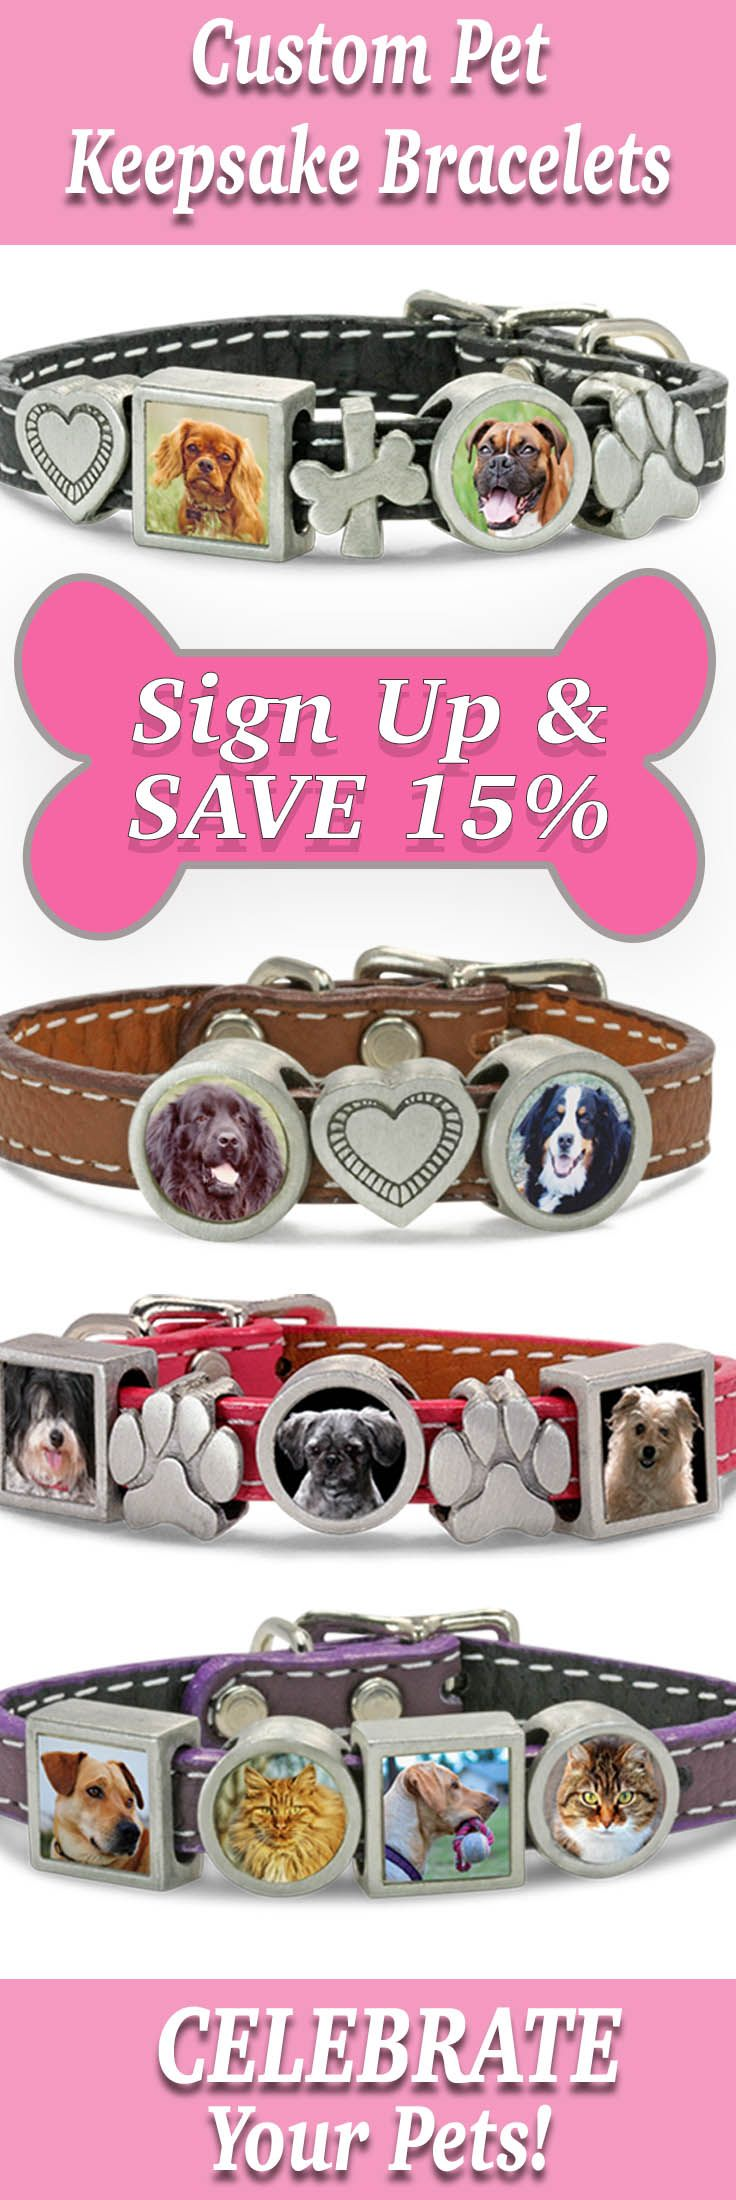 Join us and save 15% on YOUR custom Molly Bracelet: https://zeldassong.lpages.co/pinterest-molly/ Your CUSTOM bracelet is priced as you create it - $45 for the wristband, then $25 per photo charm and $20 per dog-themed charm. Create the story of YOUR fur kid!